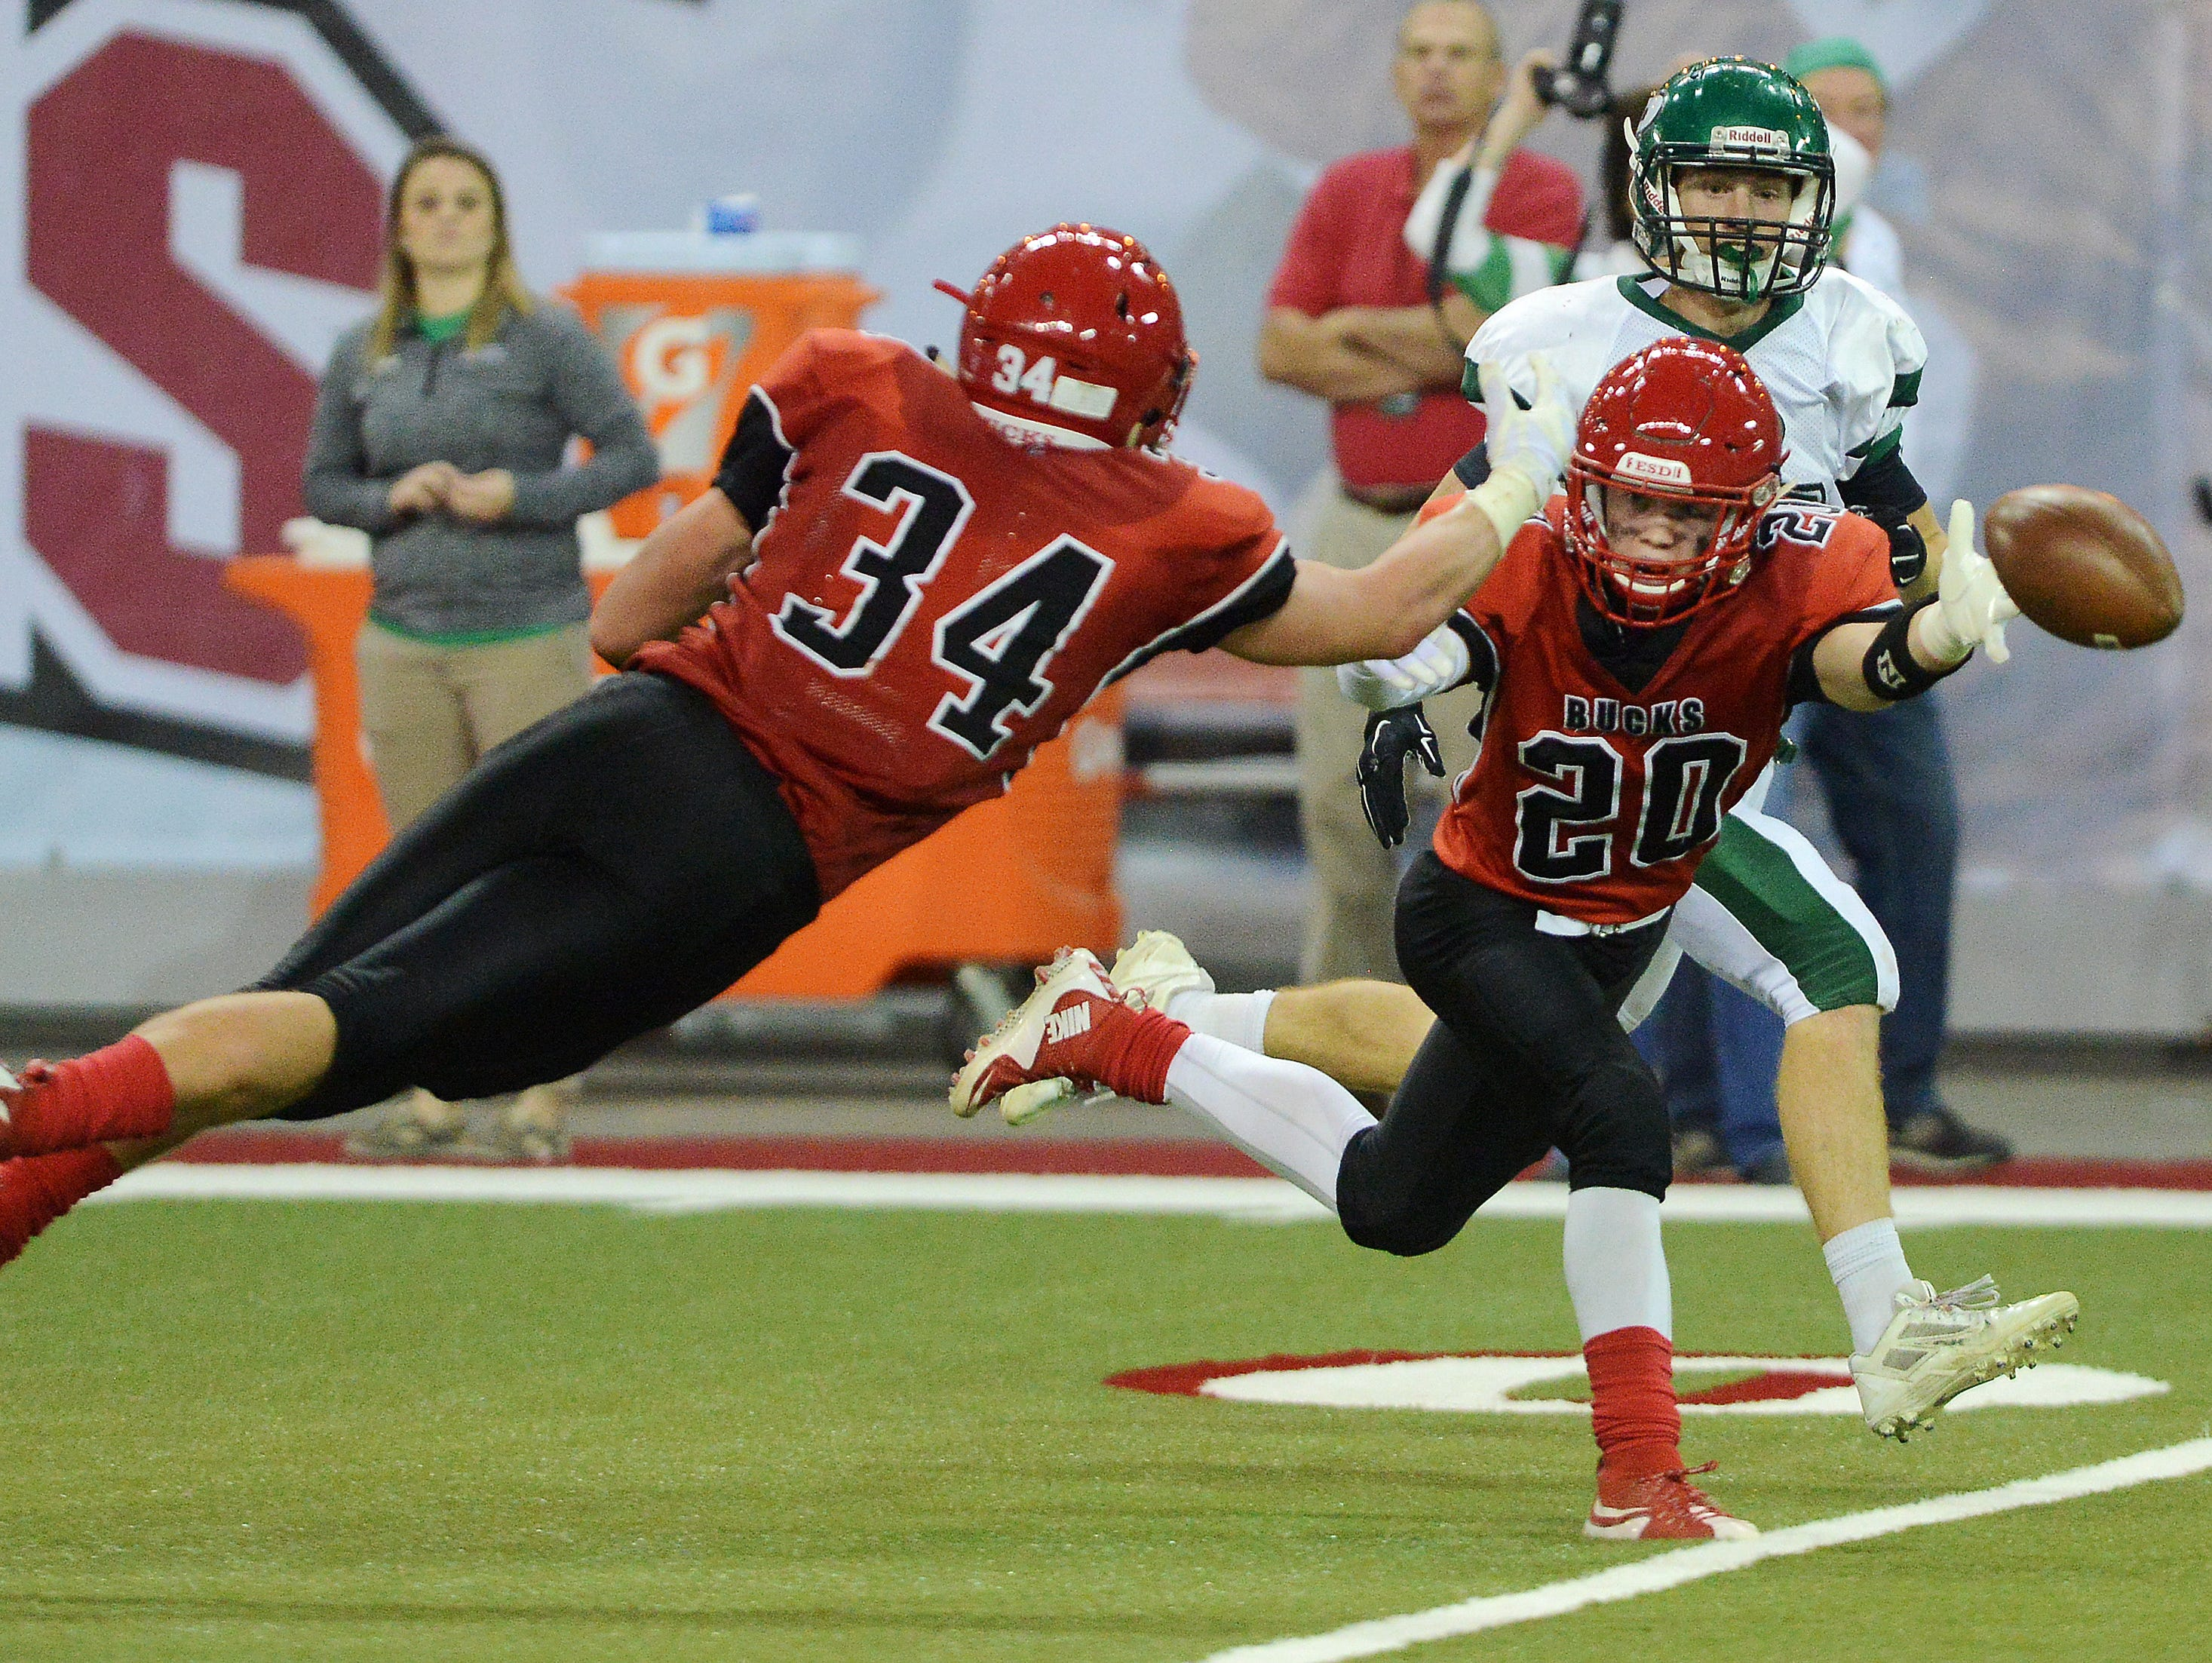 Yankton's Sheldon Gant and Tanner Frick dive for a pass during the Class 11AA championship. Gant and Frick were two of five Yankton seniors named to the Class 11AA All-State team.